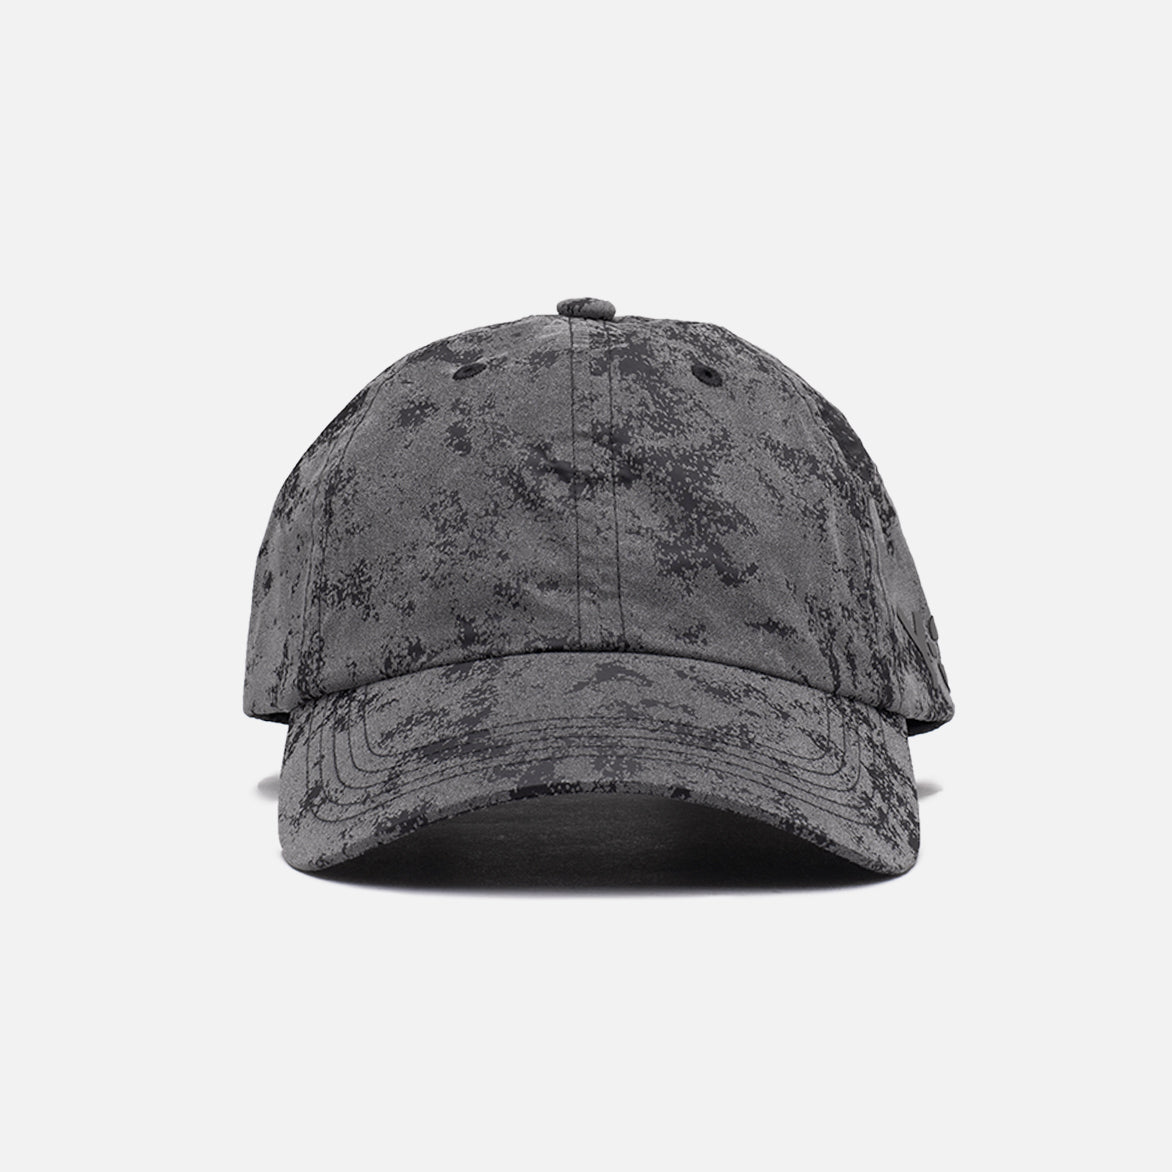 CH1 DISTRESSED REFLECTIVE CAP - BLACK